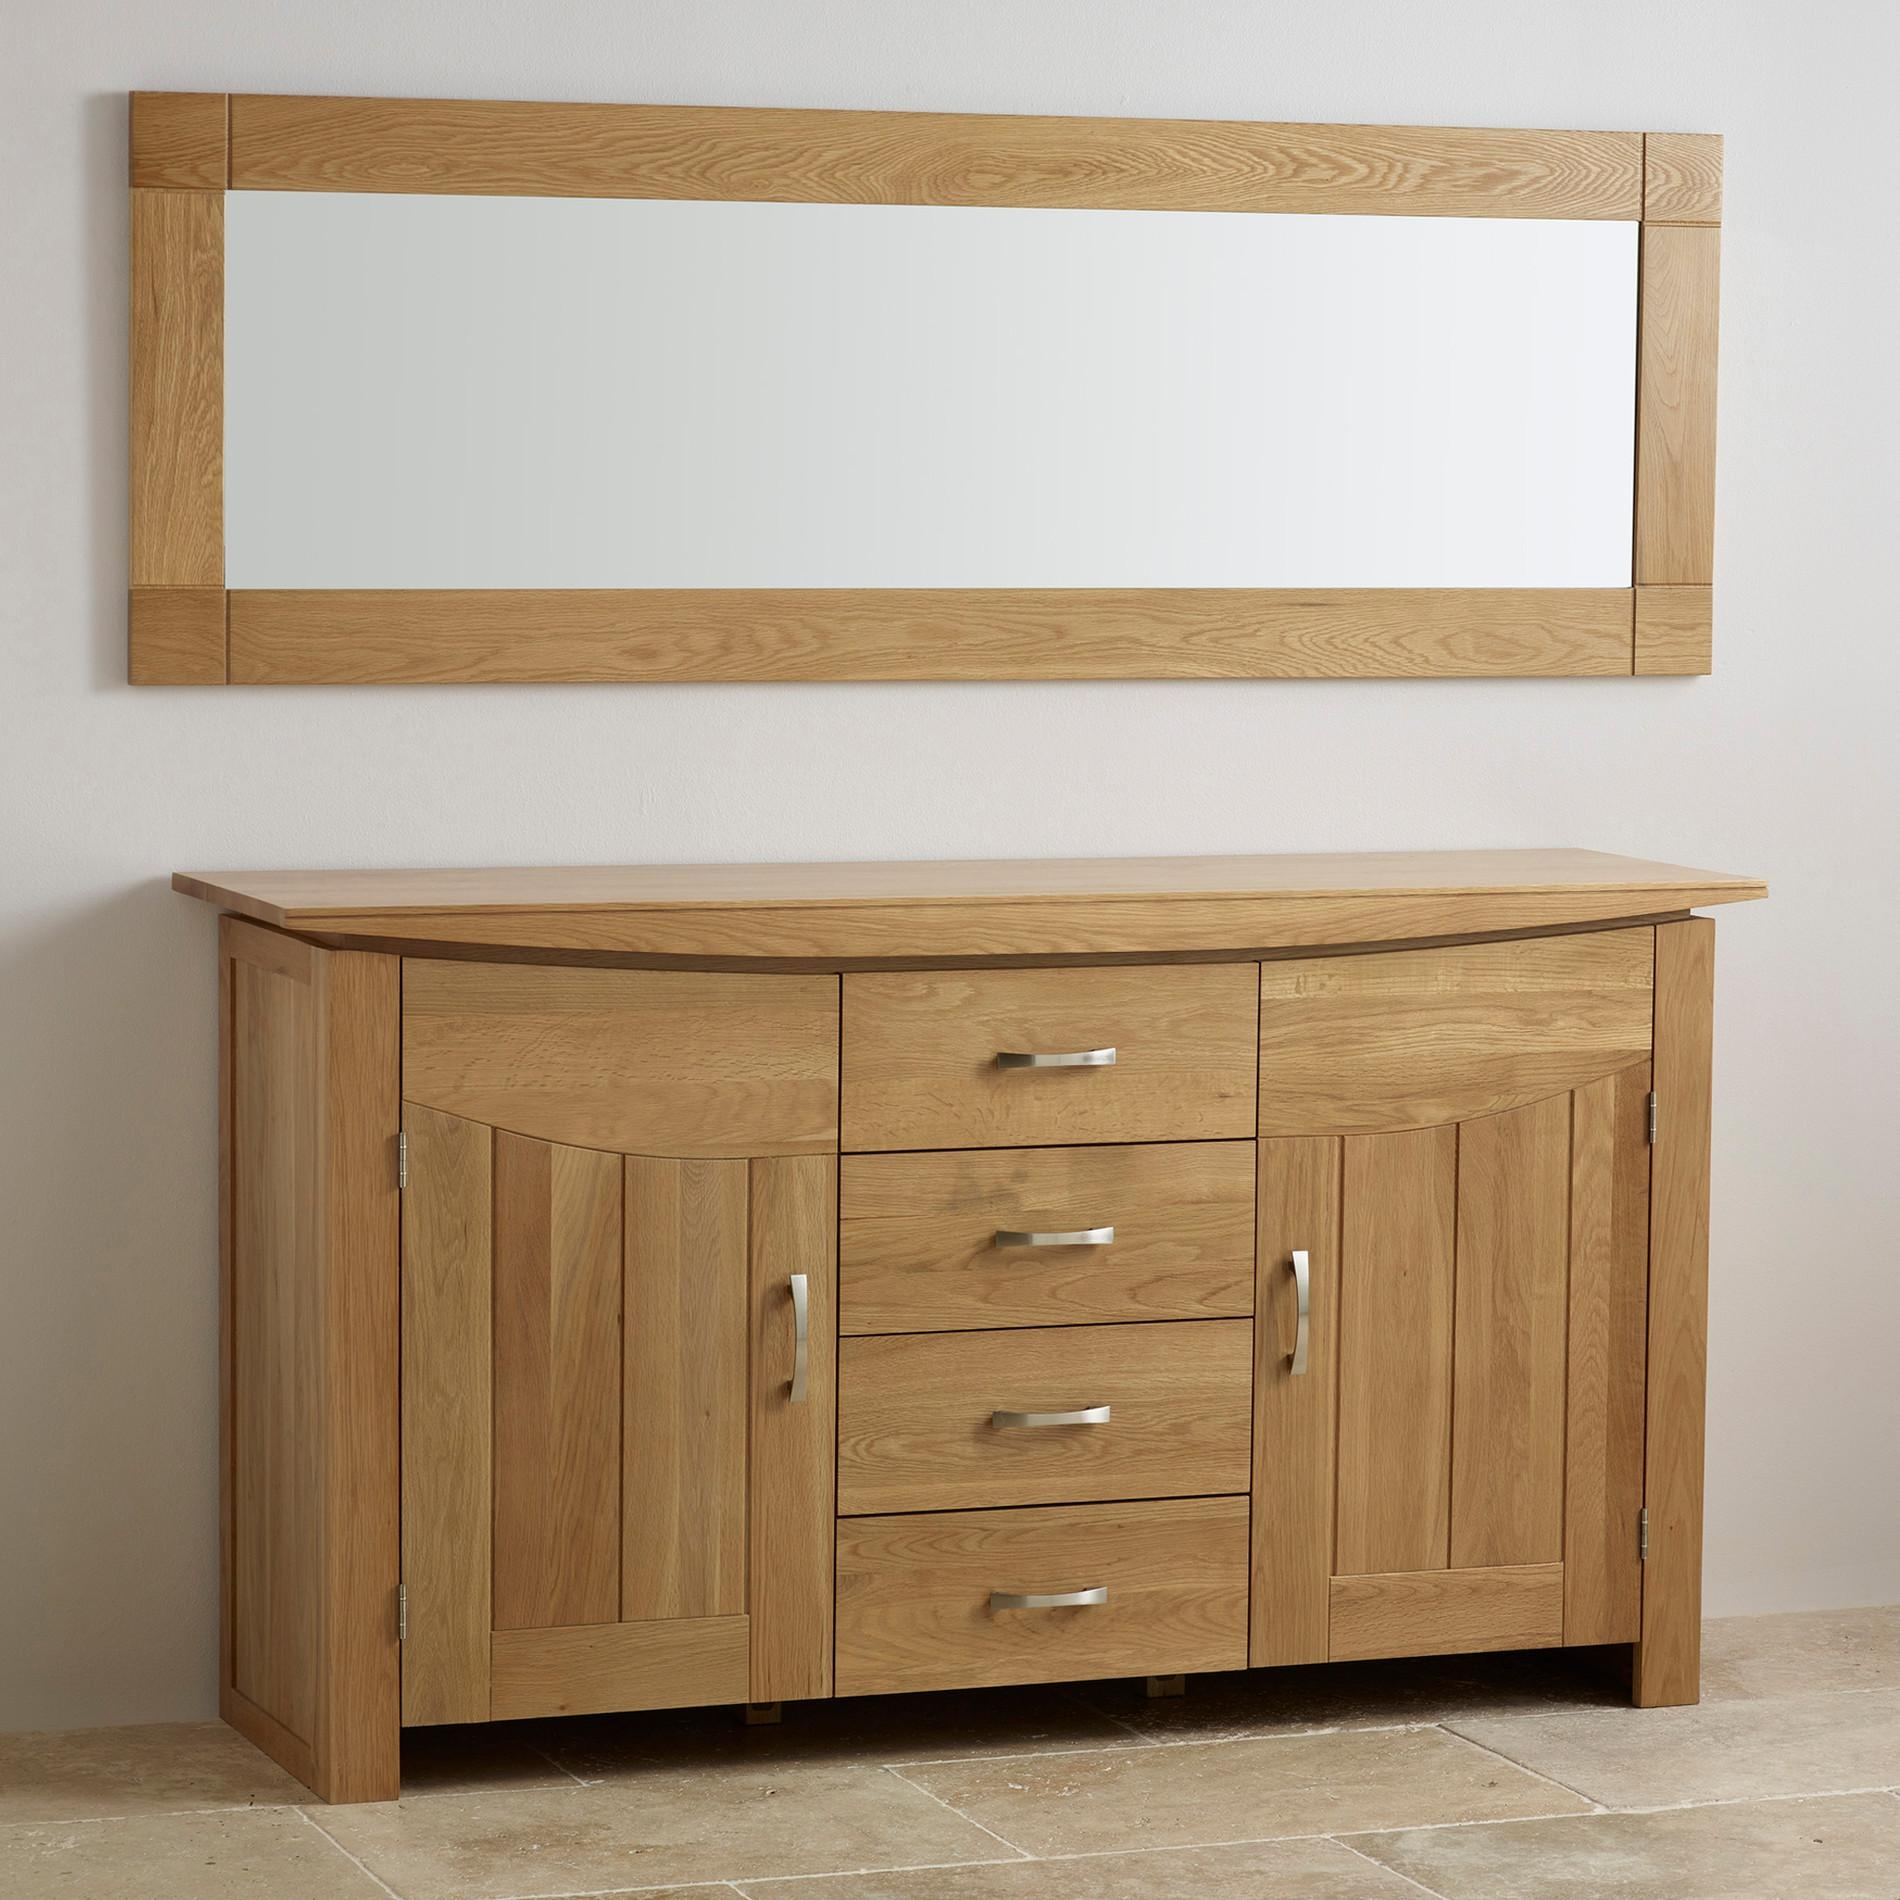 Mirrors | Bring Light To Your Room | Oak Furniture Land Throughout Oak Framed Wall Mirror (View 18 of 20)